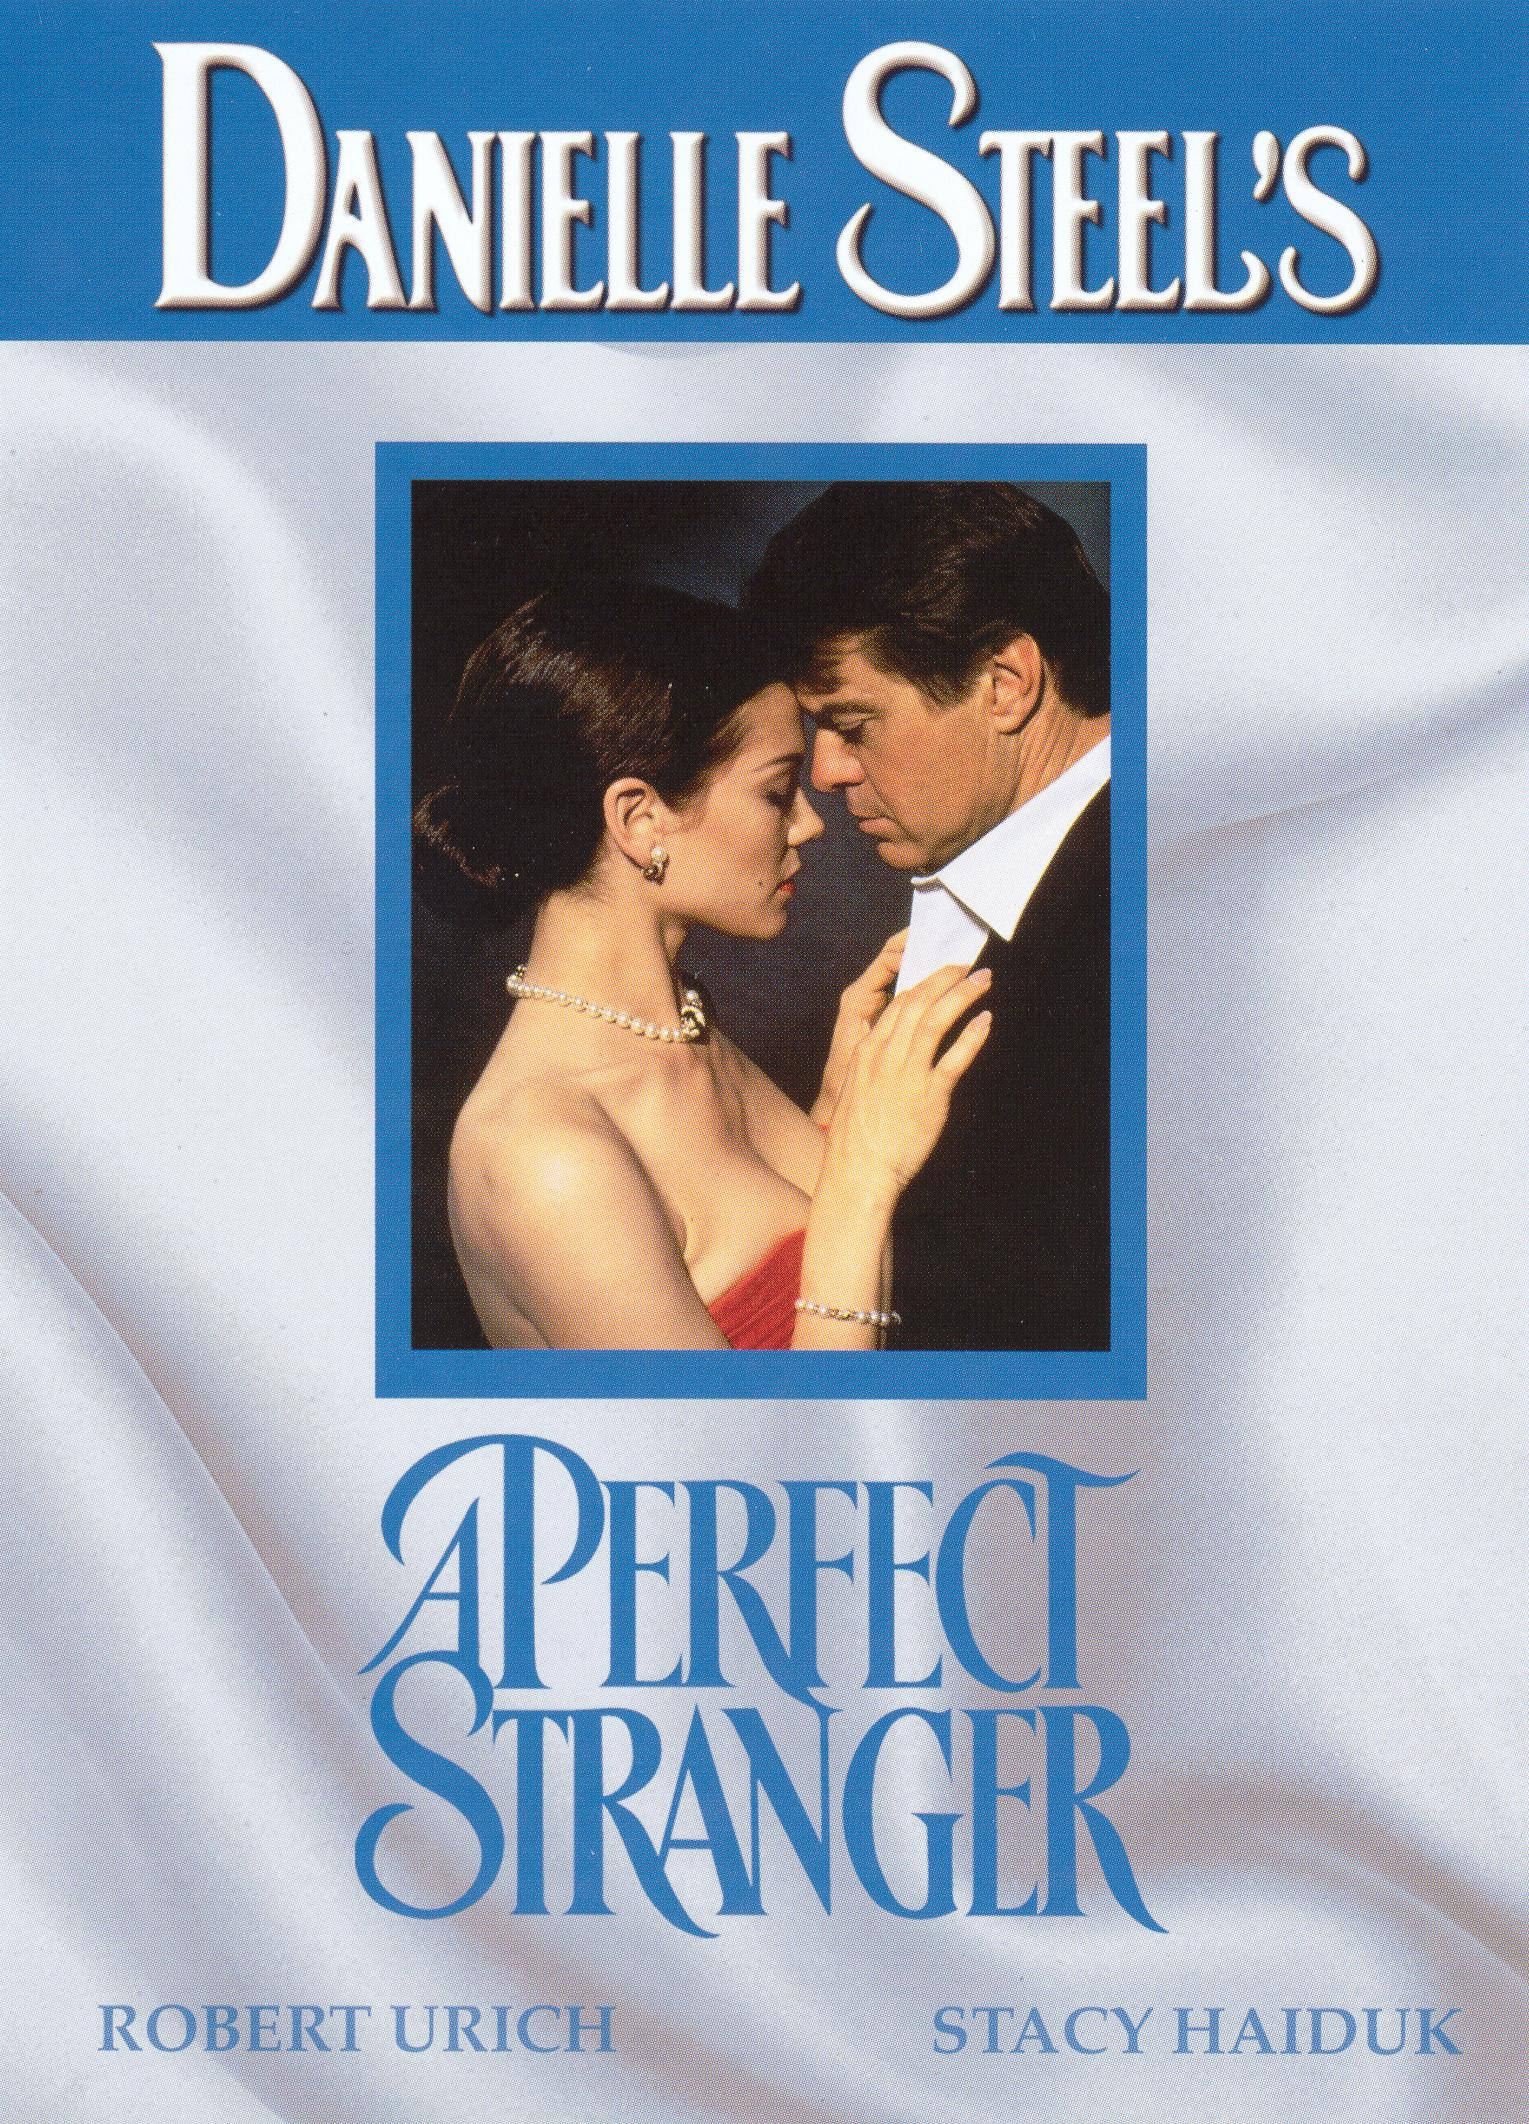 Danielle Steel's 'A Perfect Stranger'